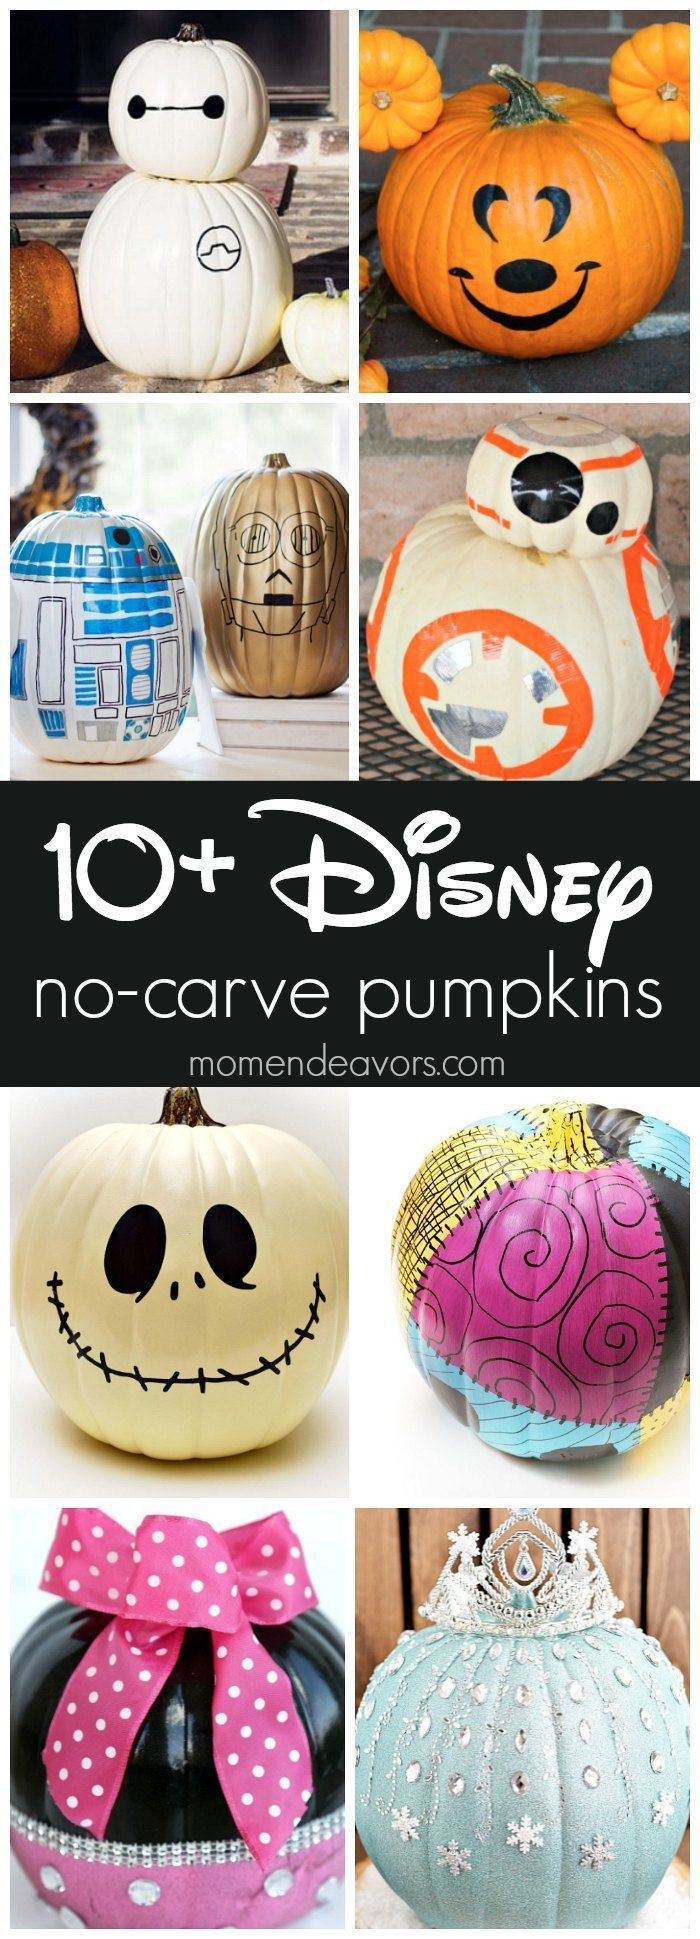 Best 25+ Halloween pumpkins ideas on Pinterest | Halloween pumpkin ...